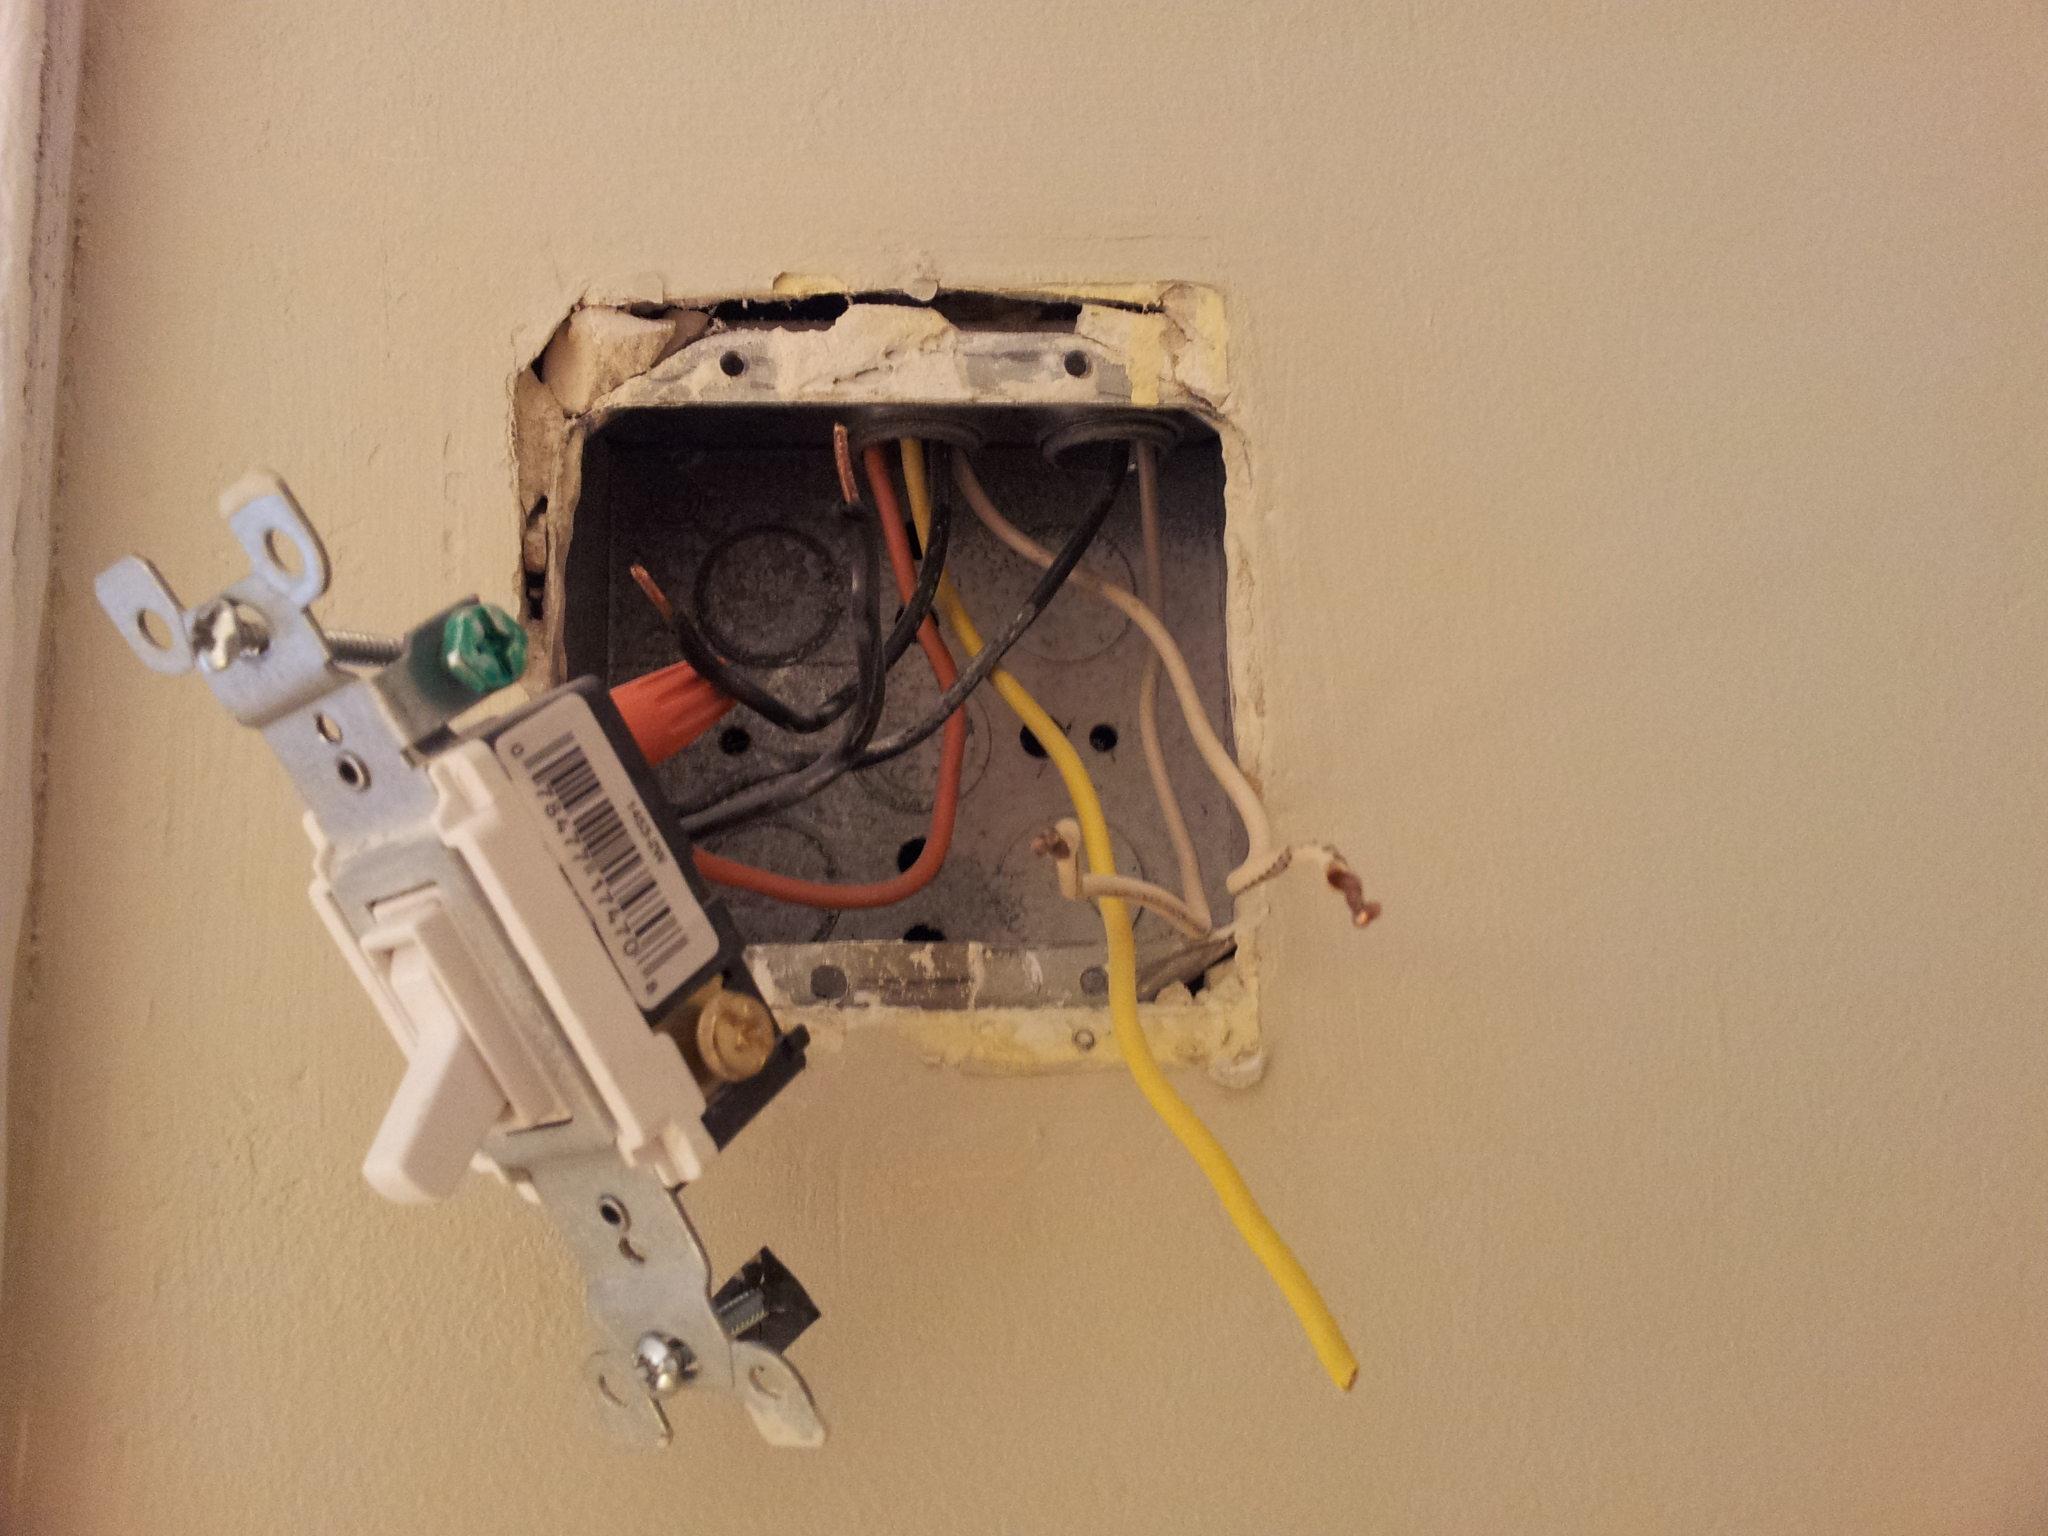 Bathroom Wiring Is All Messed Up  Light Stays On Constantly And I Cannot Figure Out What The